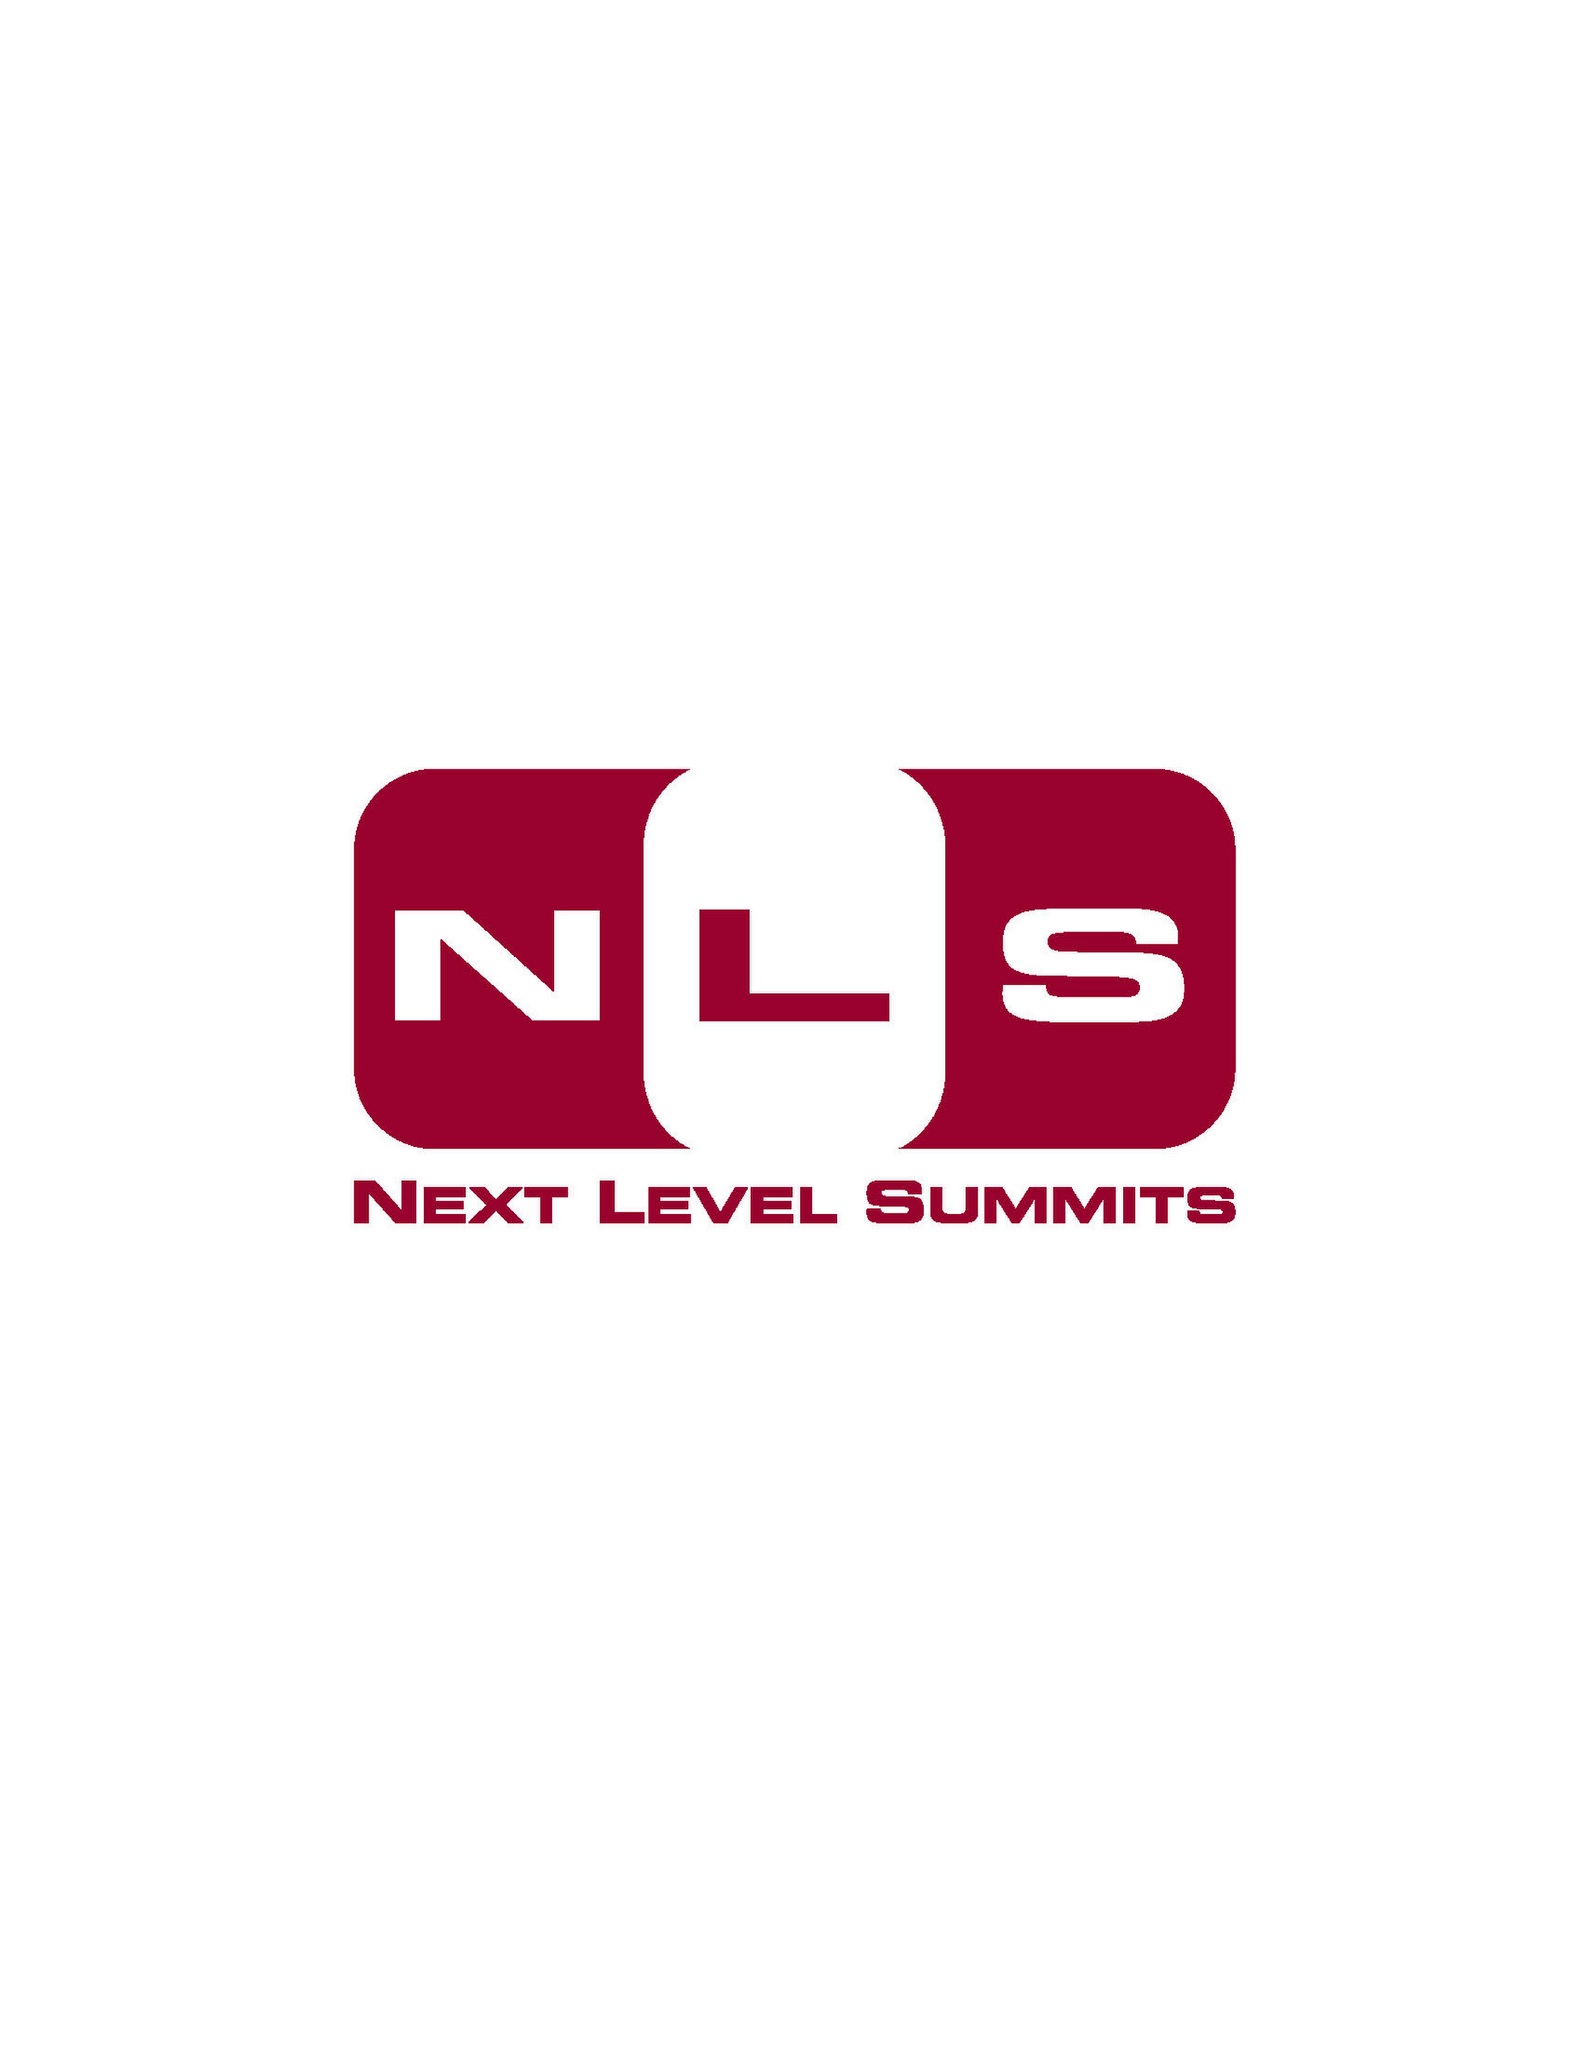 Next Level Summits Inc